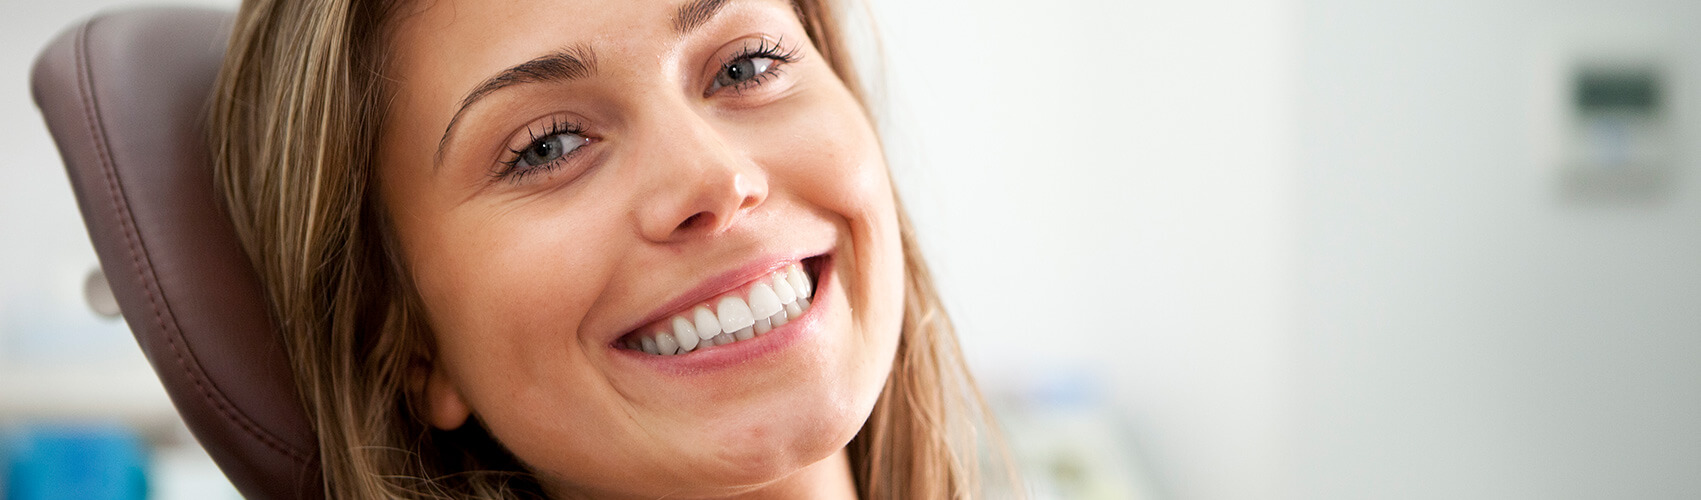 lady smiling in dental chair